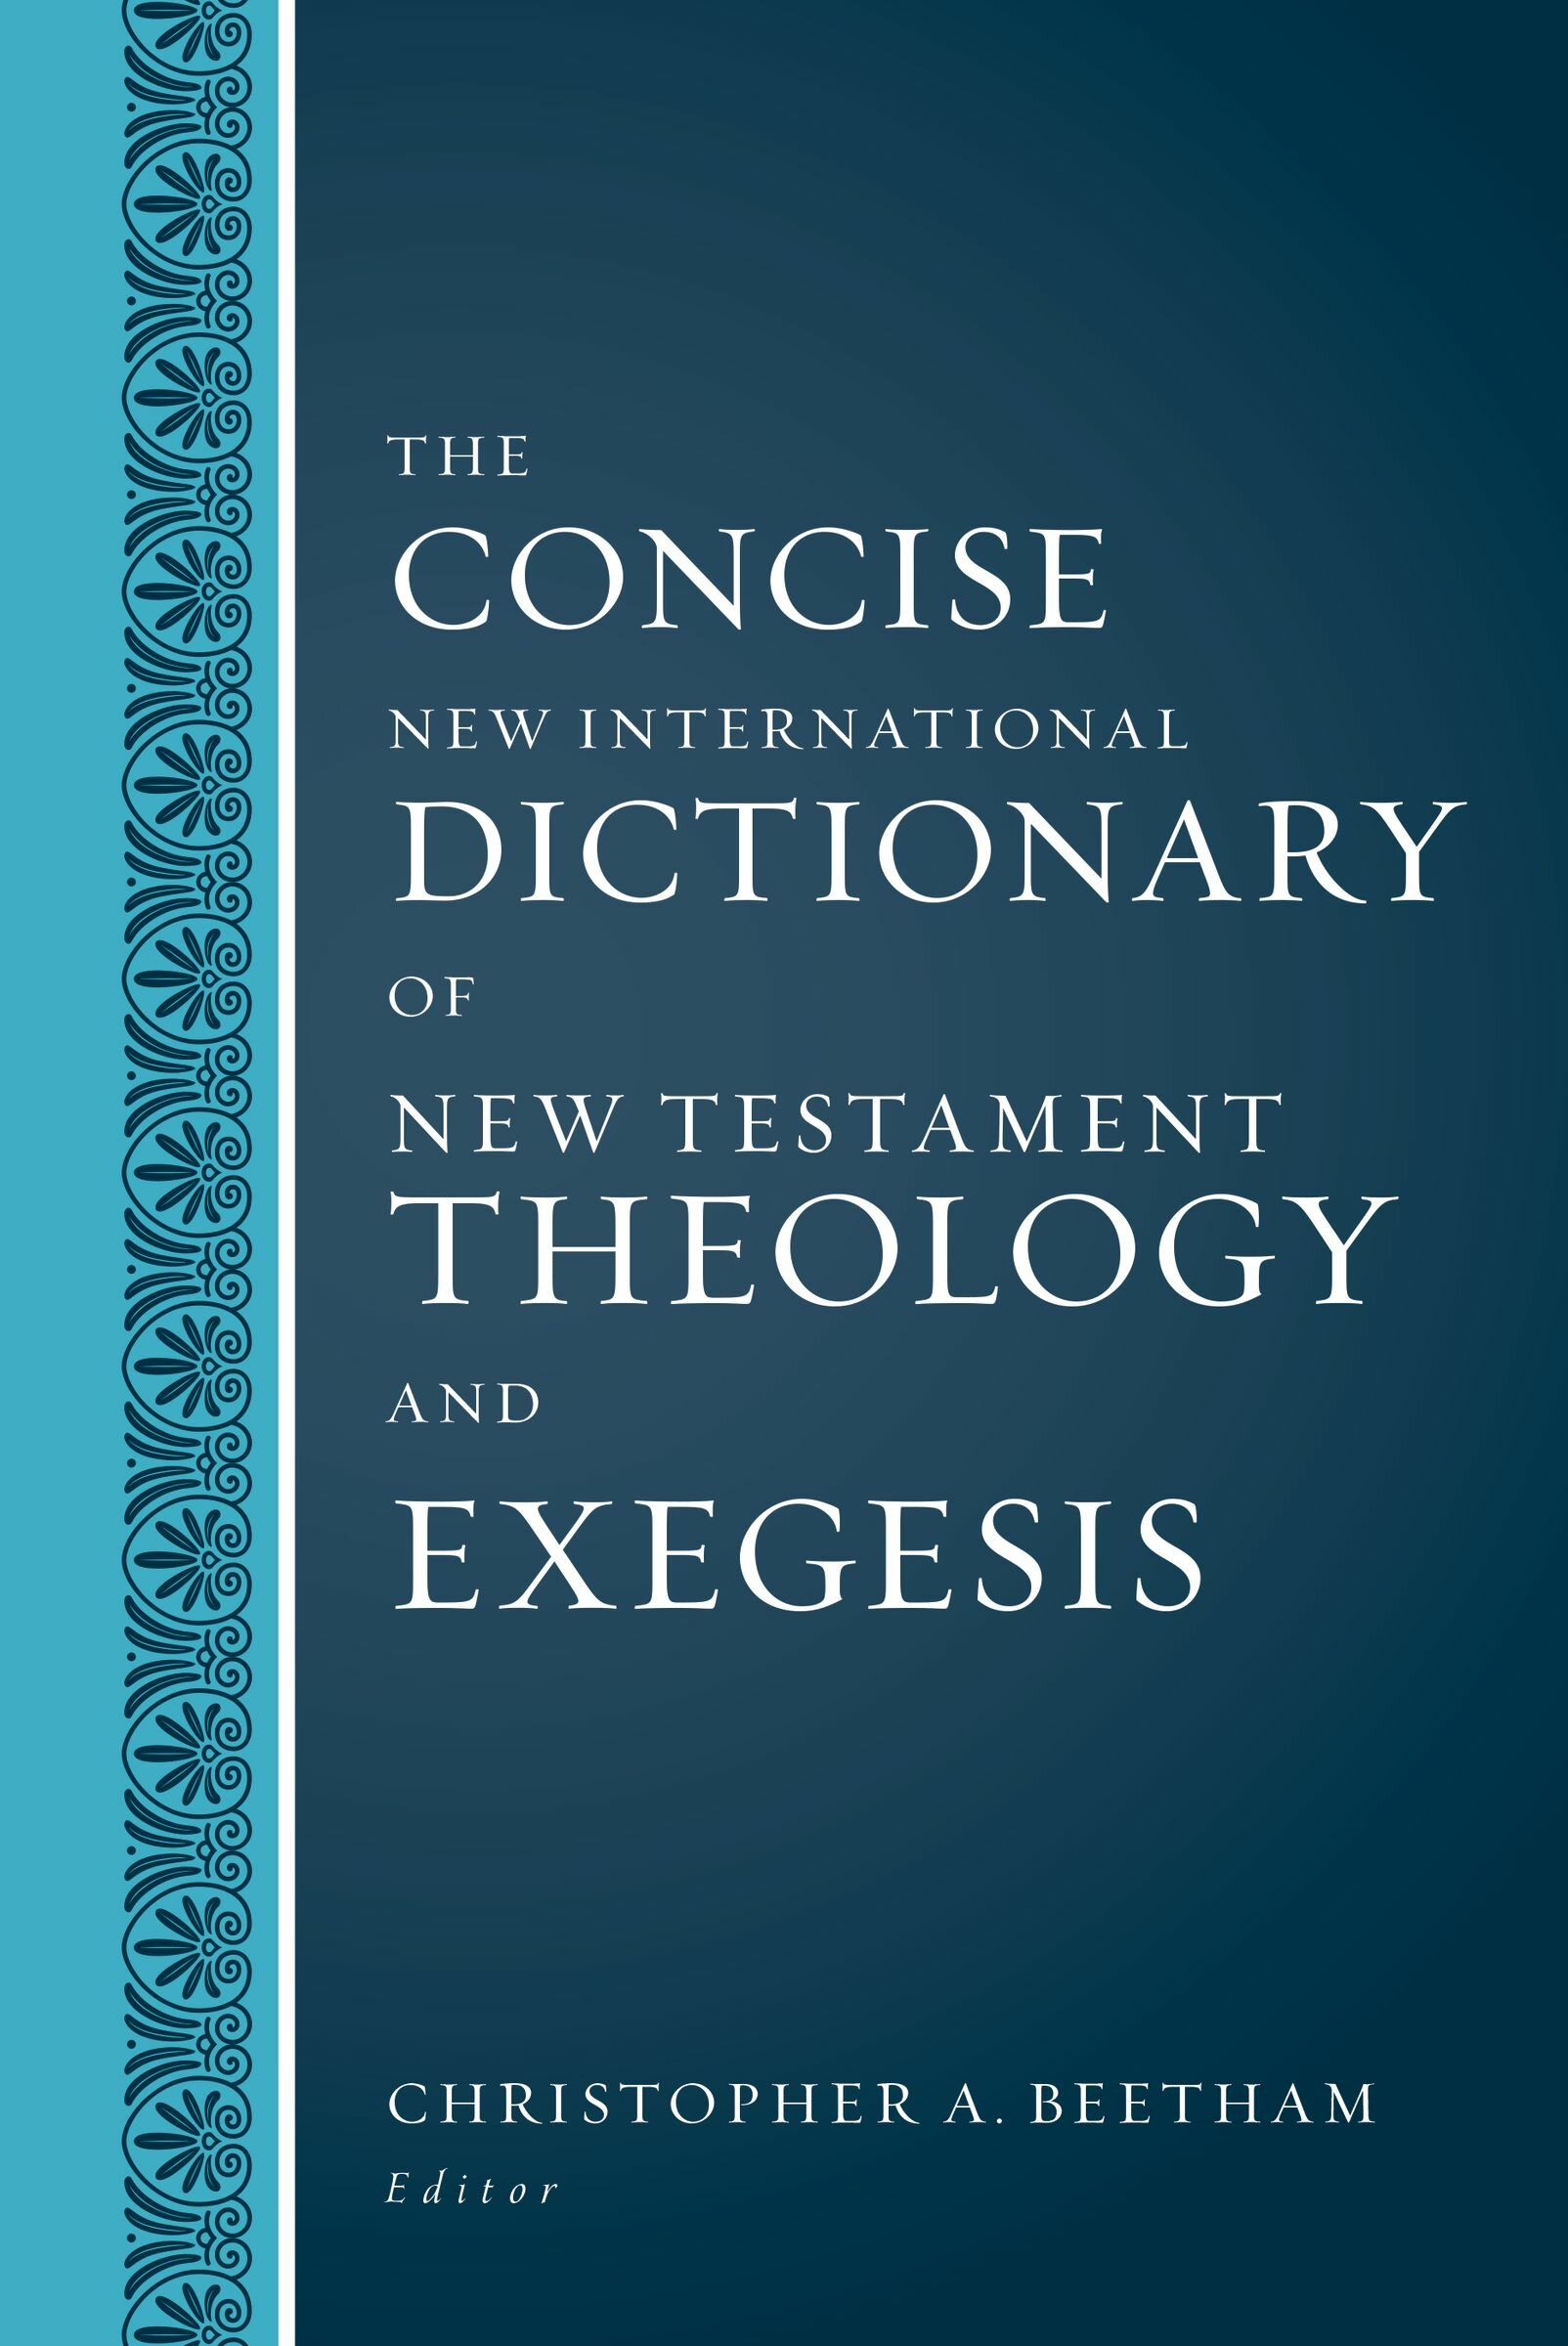 The Concise New International Dictionary of New Testament Theology and Exegesis